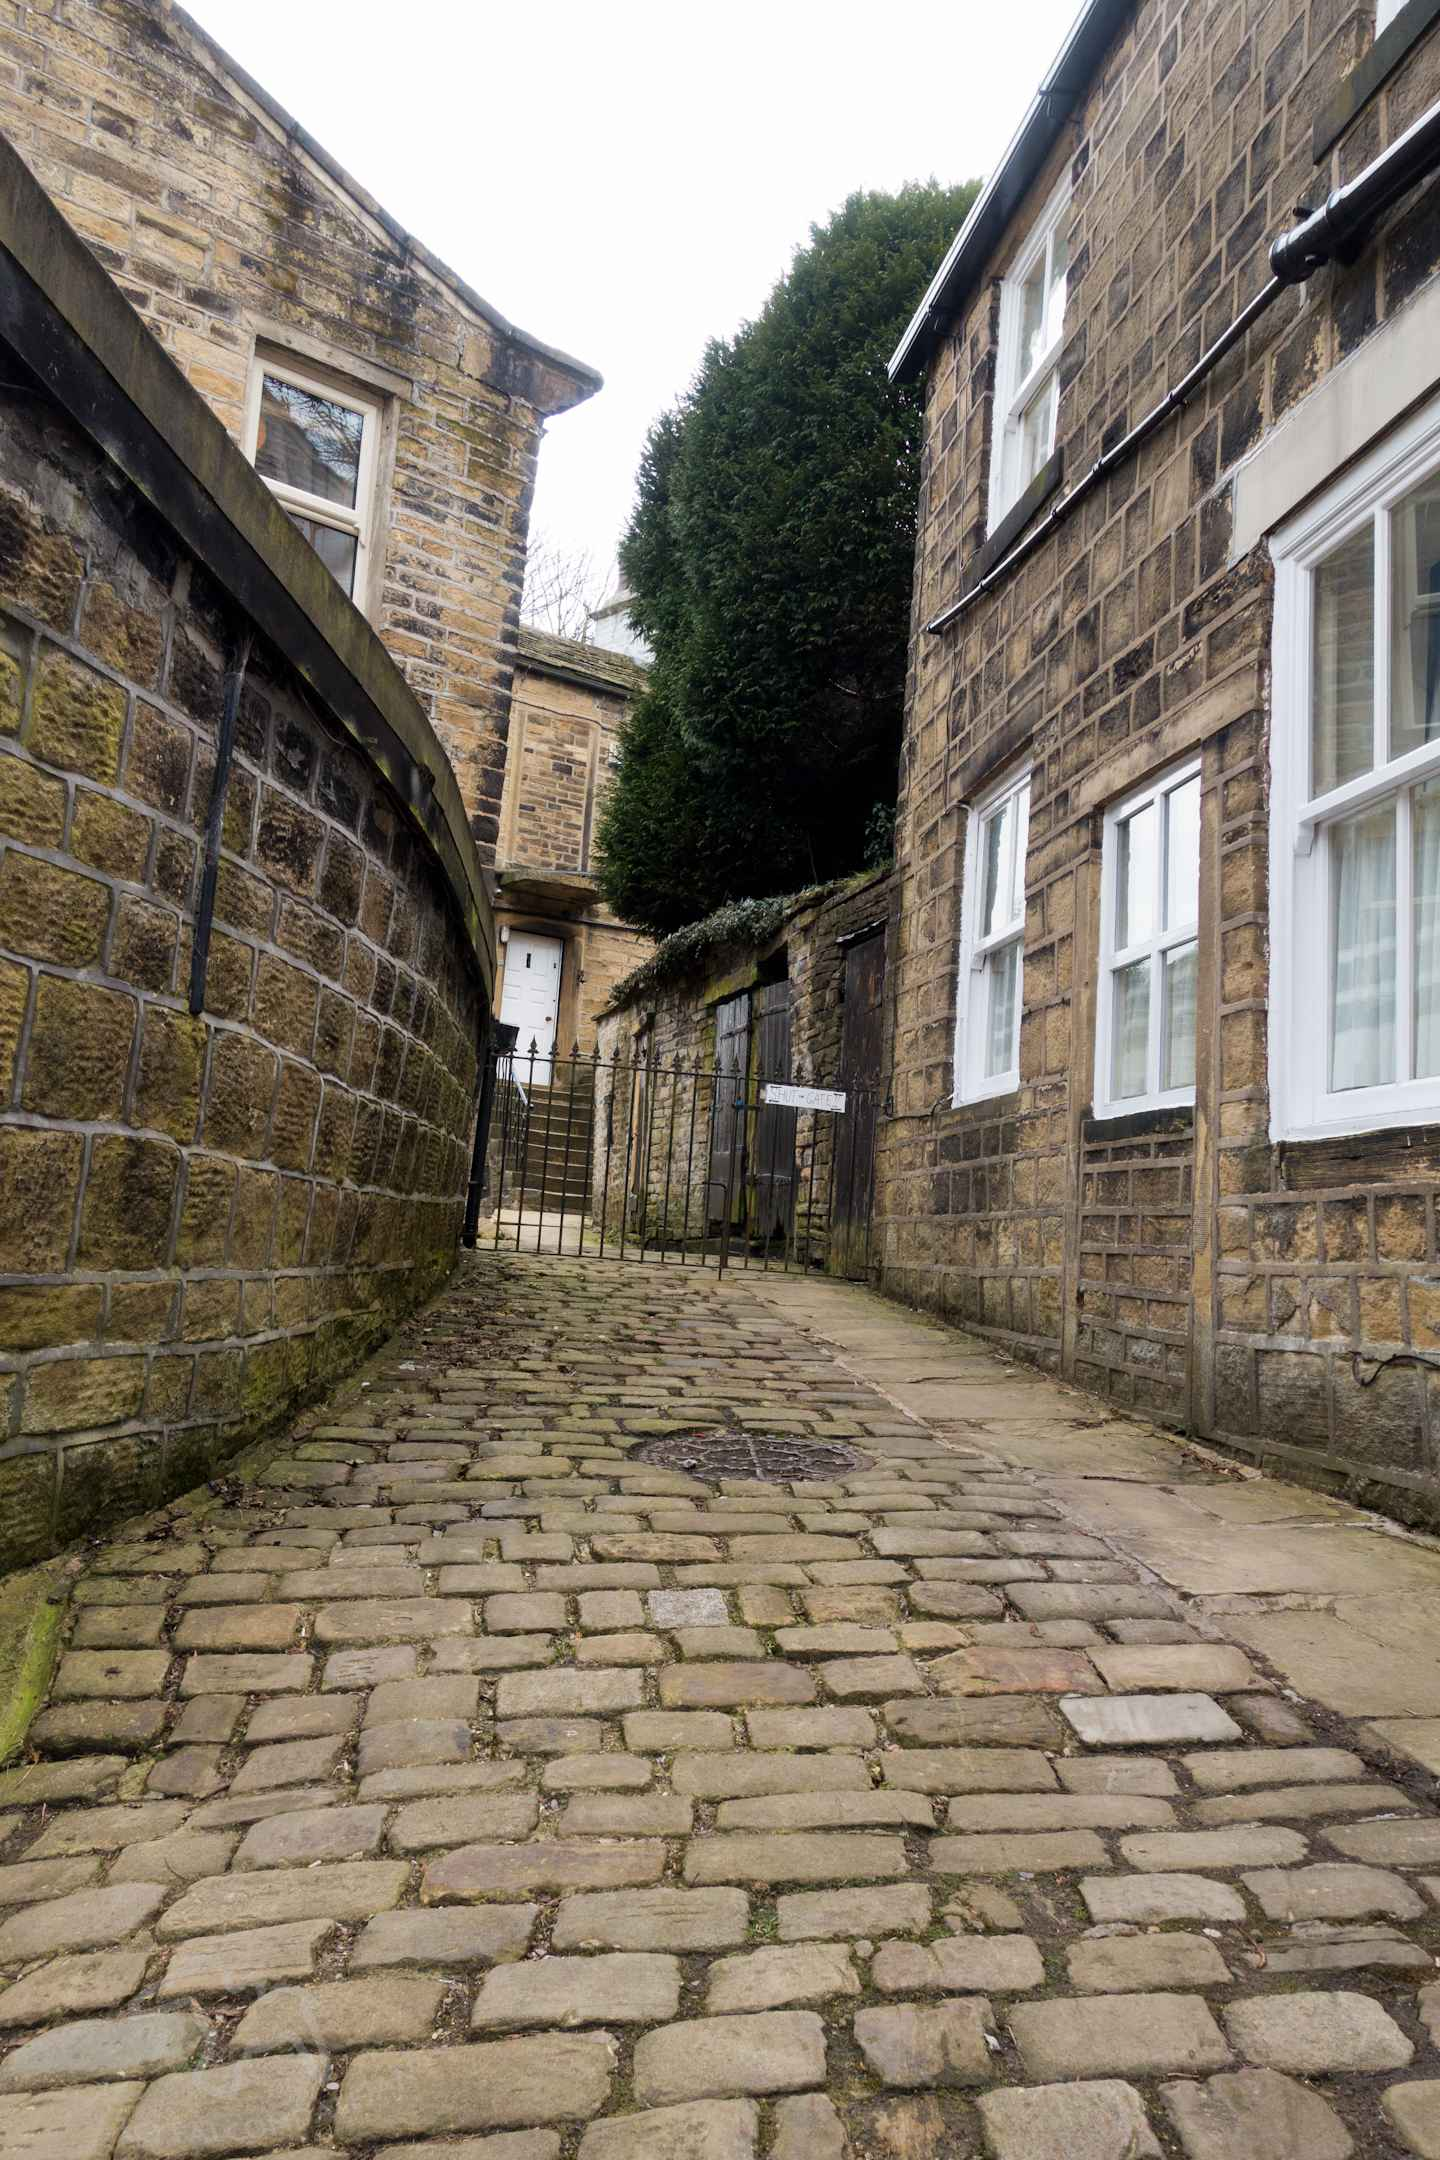 Unusual tips and hacks for independent itinerary planning for family holidays. Find ideas for road trips and self catering vacations that others may miss. Itinerary planning for families - hacks and tips for independent travel on Falcondale Life blog. Image description: cobbled English street, Haworth.